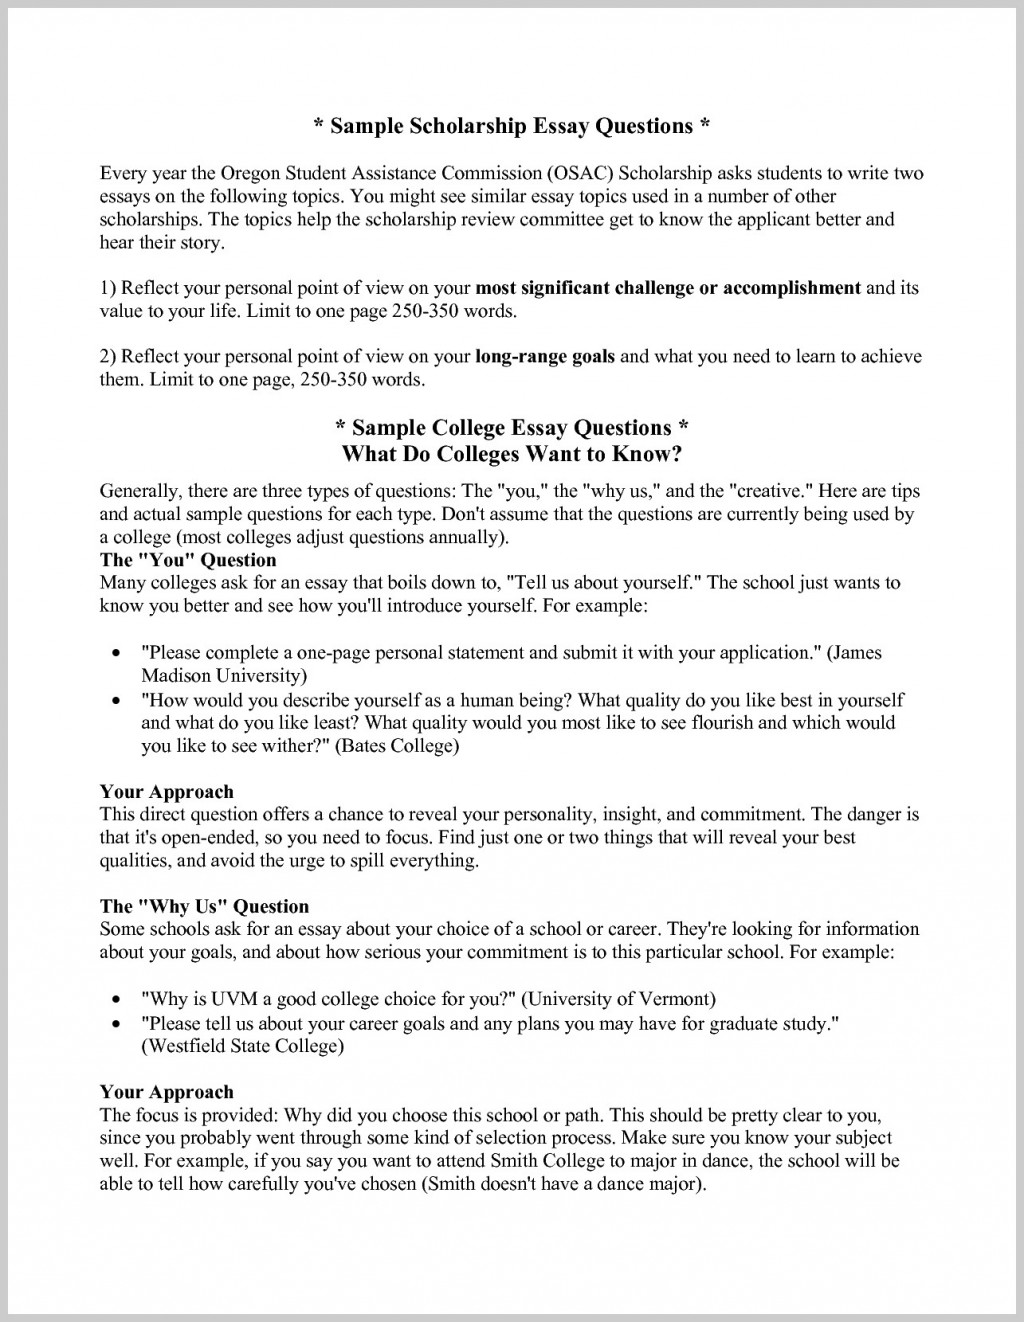 010 Scholarships That Don T Require Essays Essay Example Describing Yourself As Student On Describe Writing An About Remarkable Are There Any Don't 2019 Canadian Large